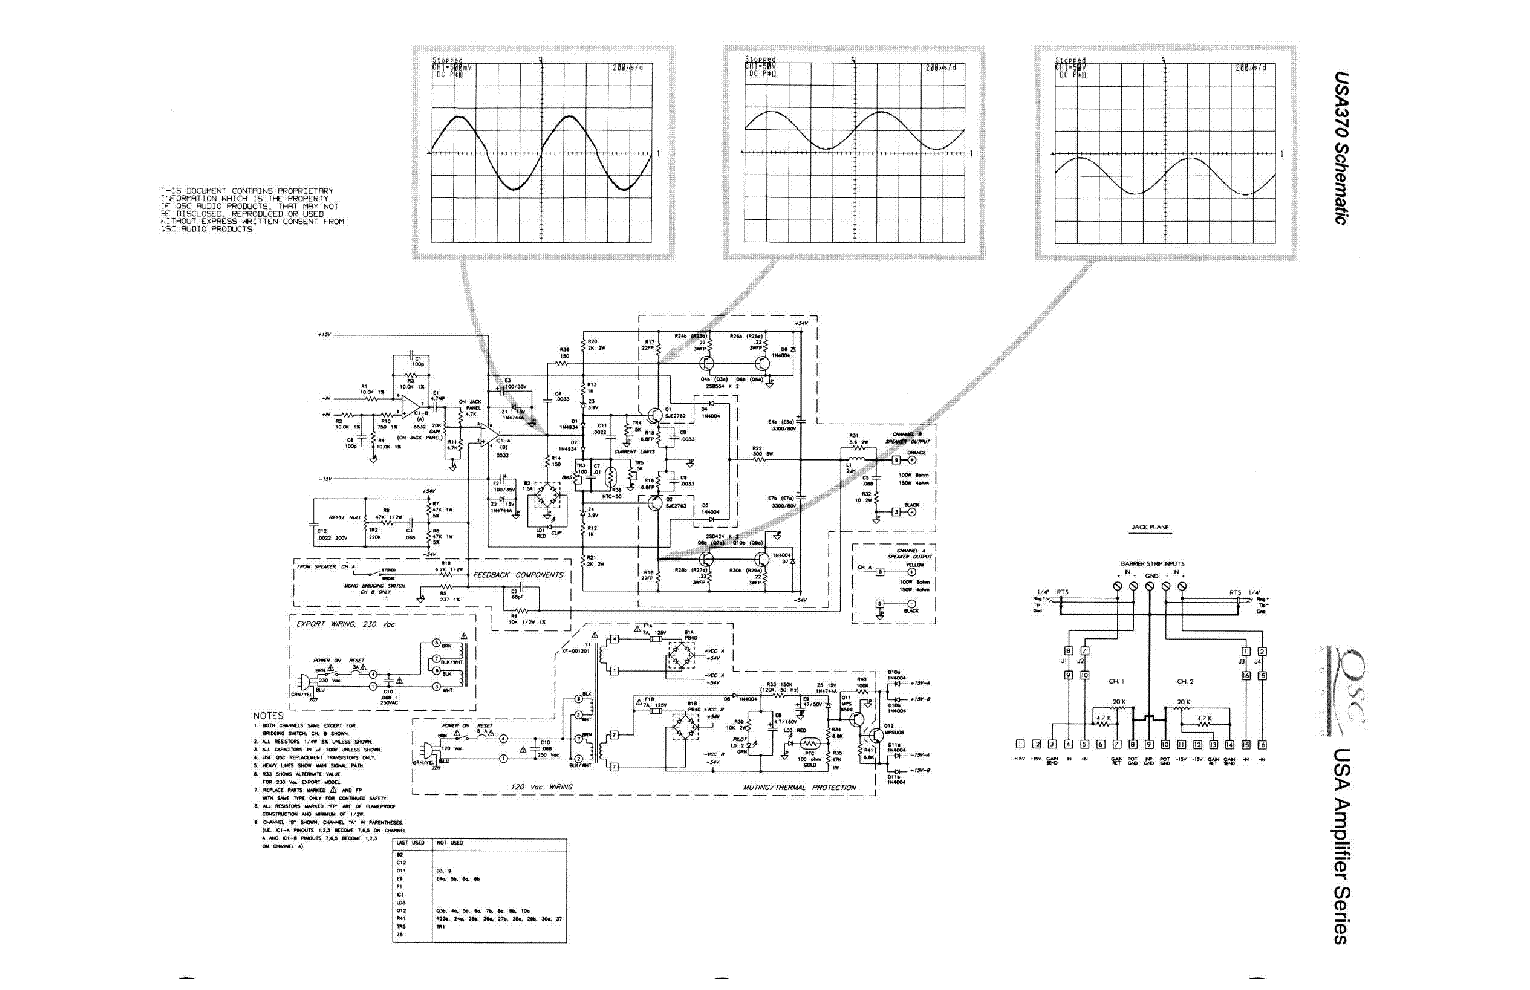 Qsc Usa370 Sch Service Manual Download Schematics Eeprom